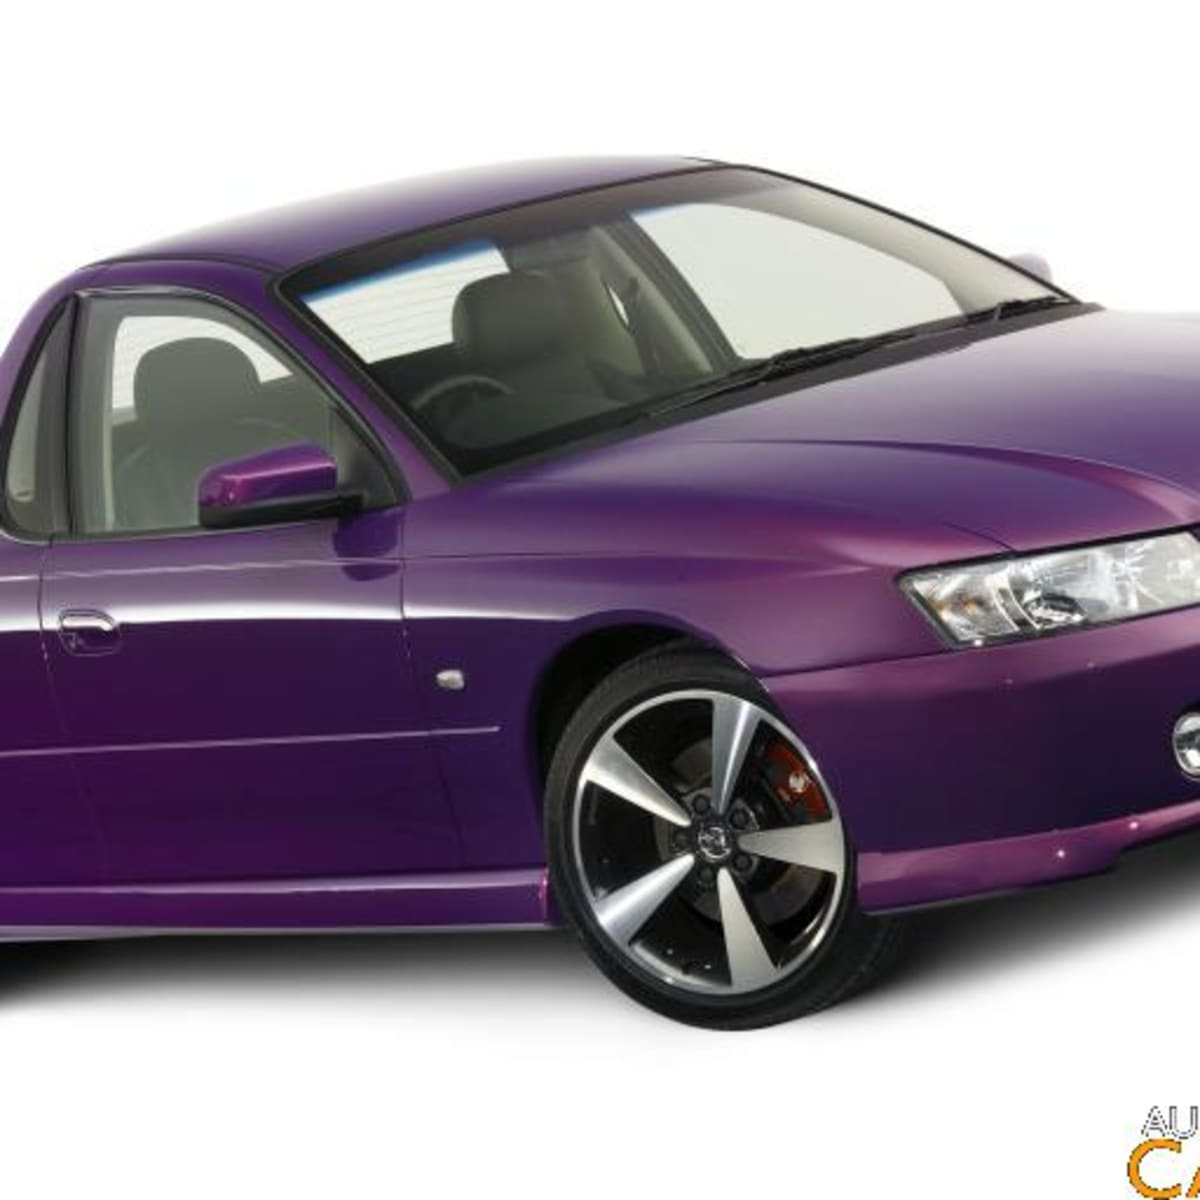 2007 Holden Commodore SVZ Ute And Wagon Special Edition | CarAdvice